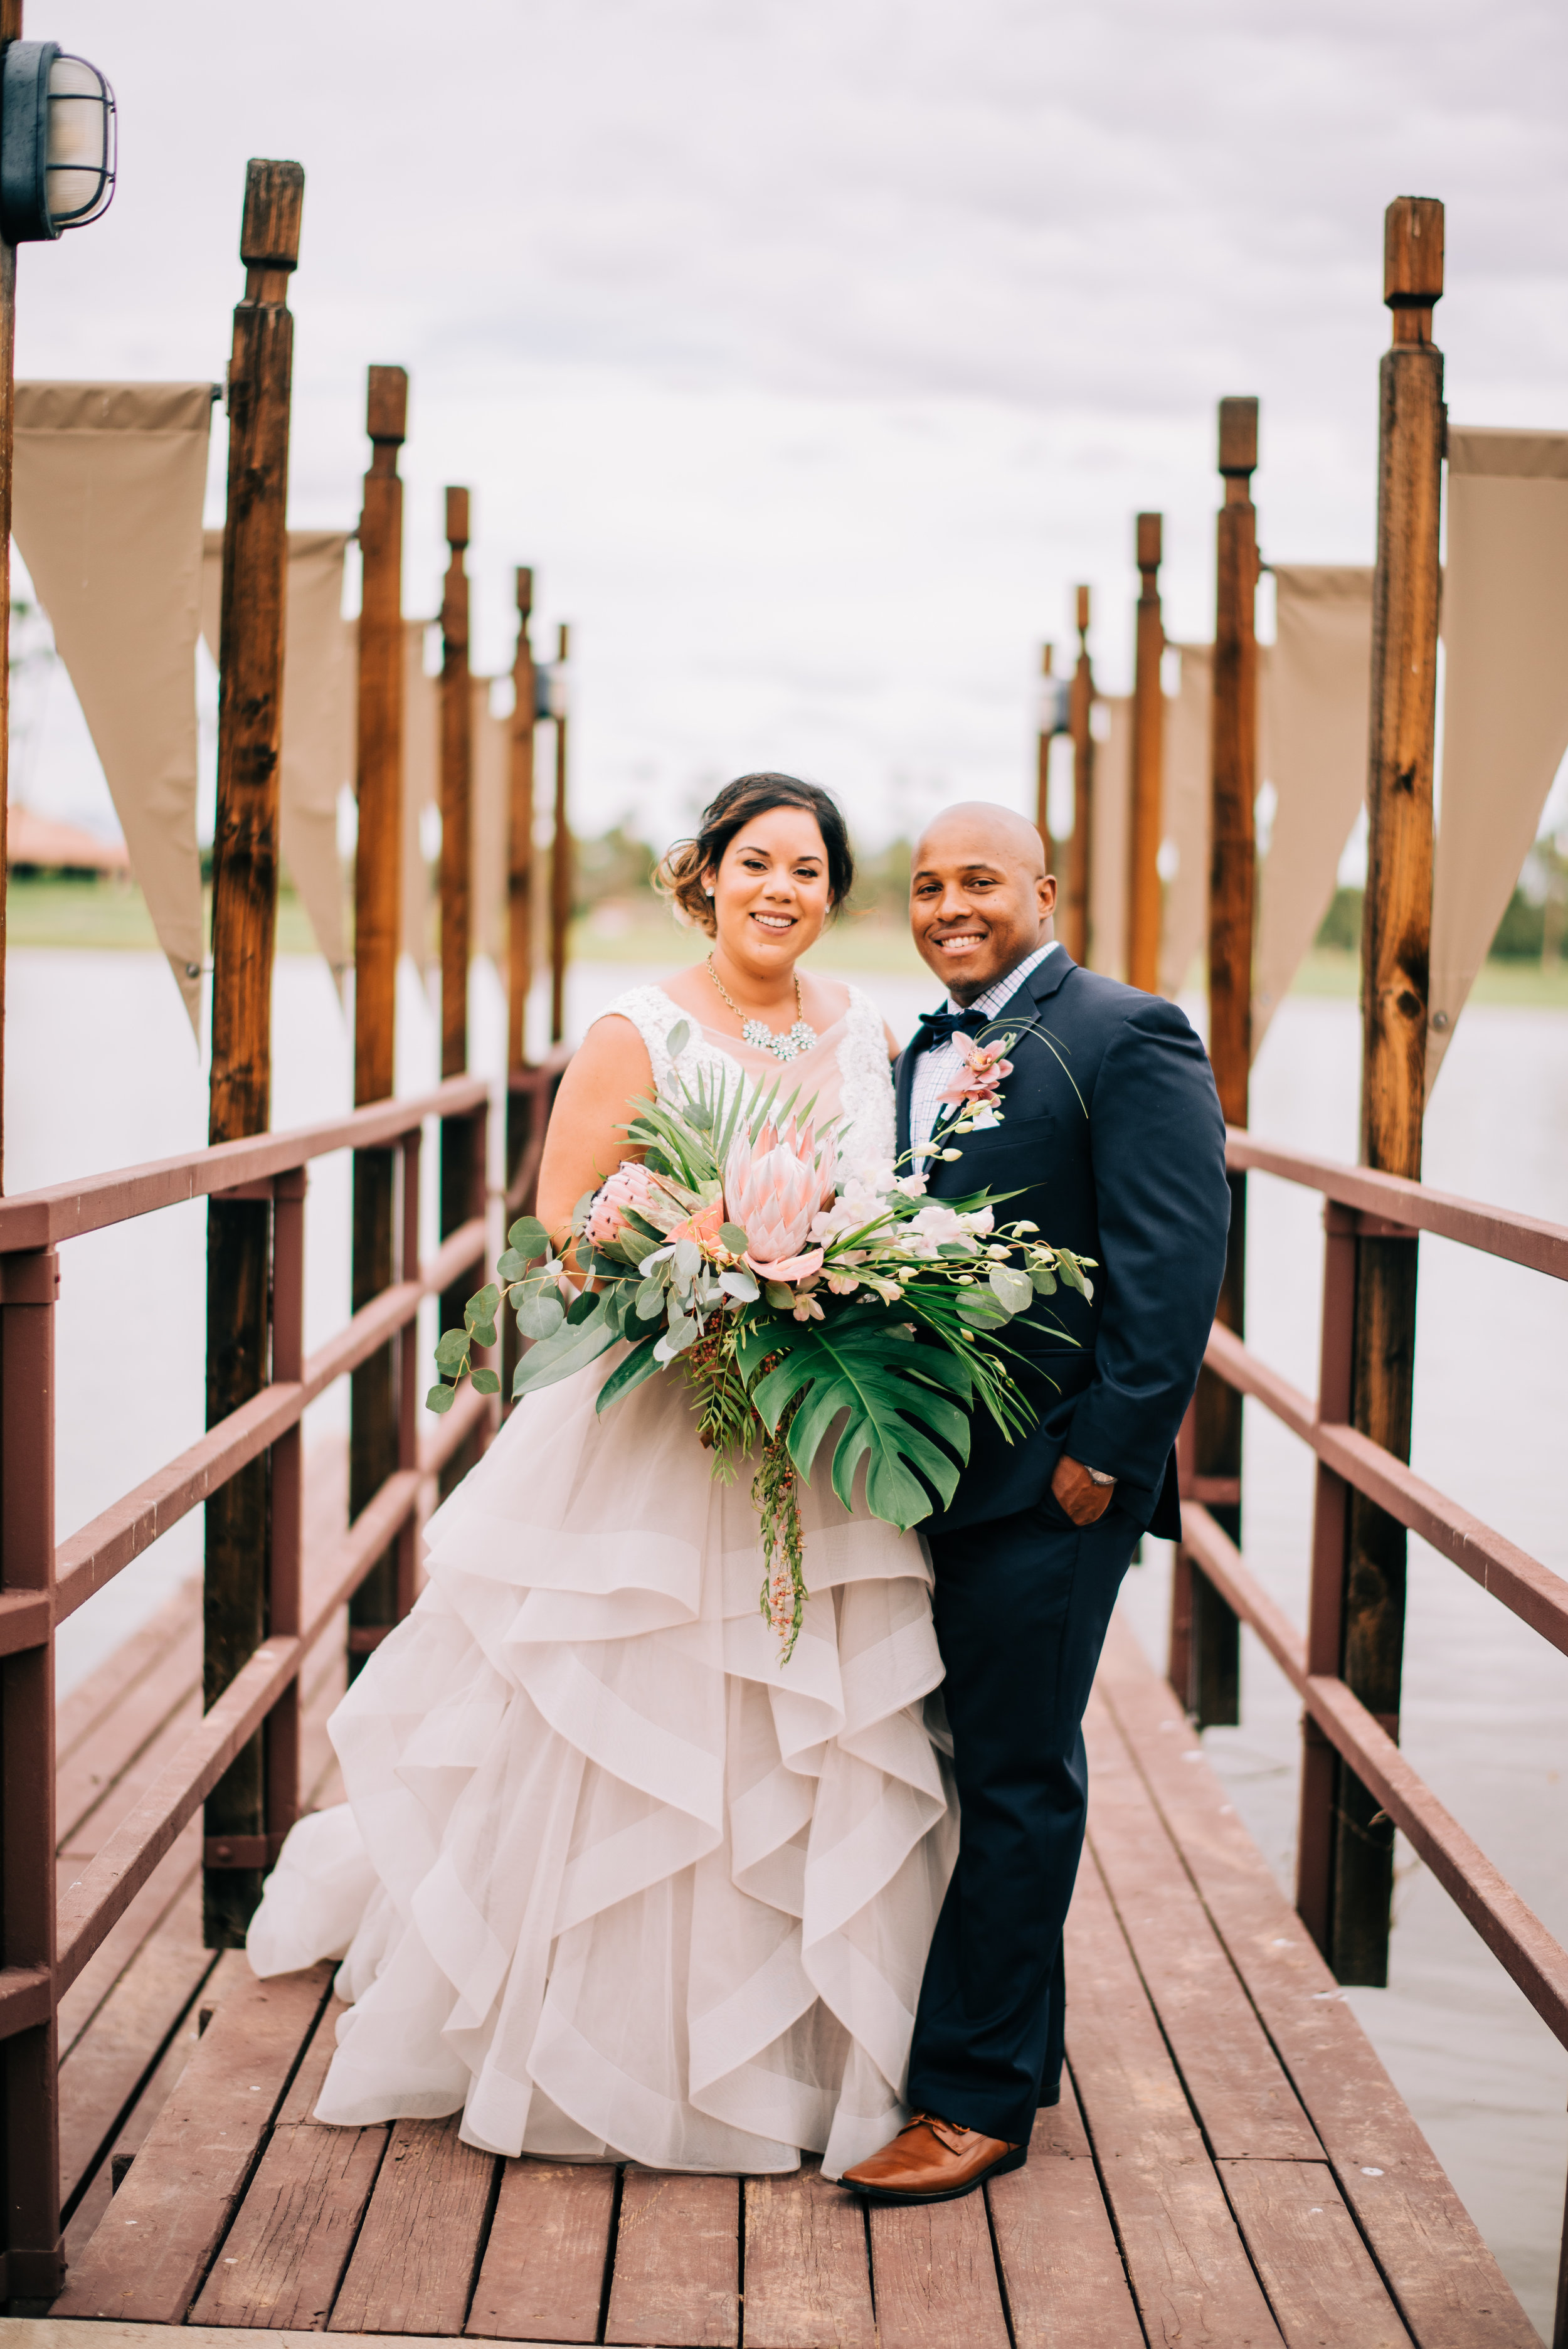 13 bride groom wedding portrait couple portrait lake wedding oasis in desert wedding colored wedding dress blush wedding dress Life Design Events photos by Josh Snyder Photography.jpg